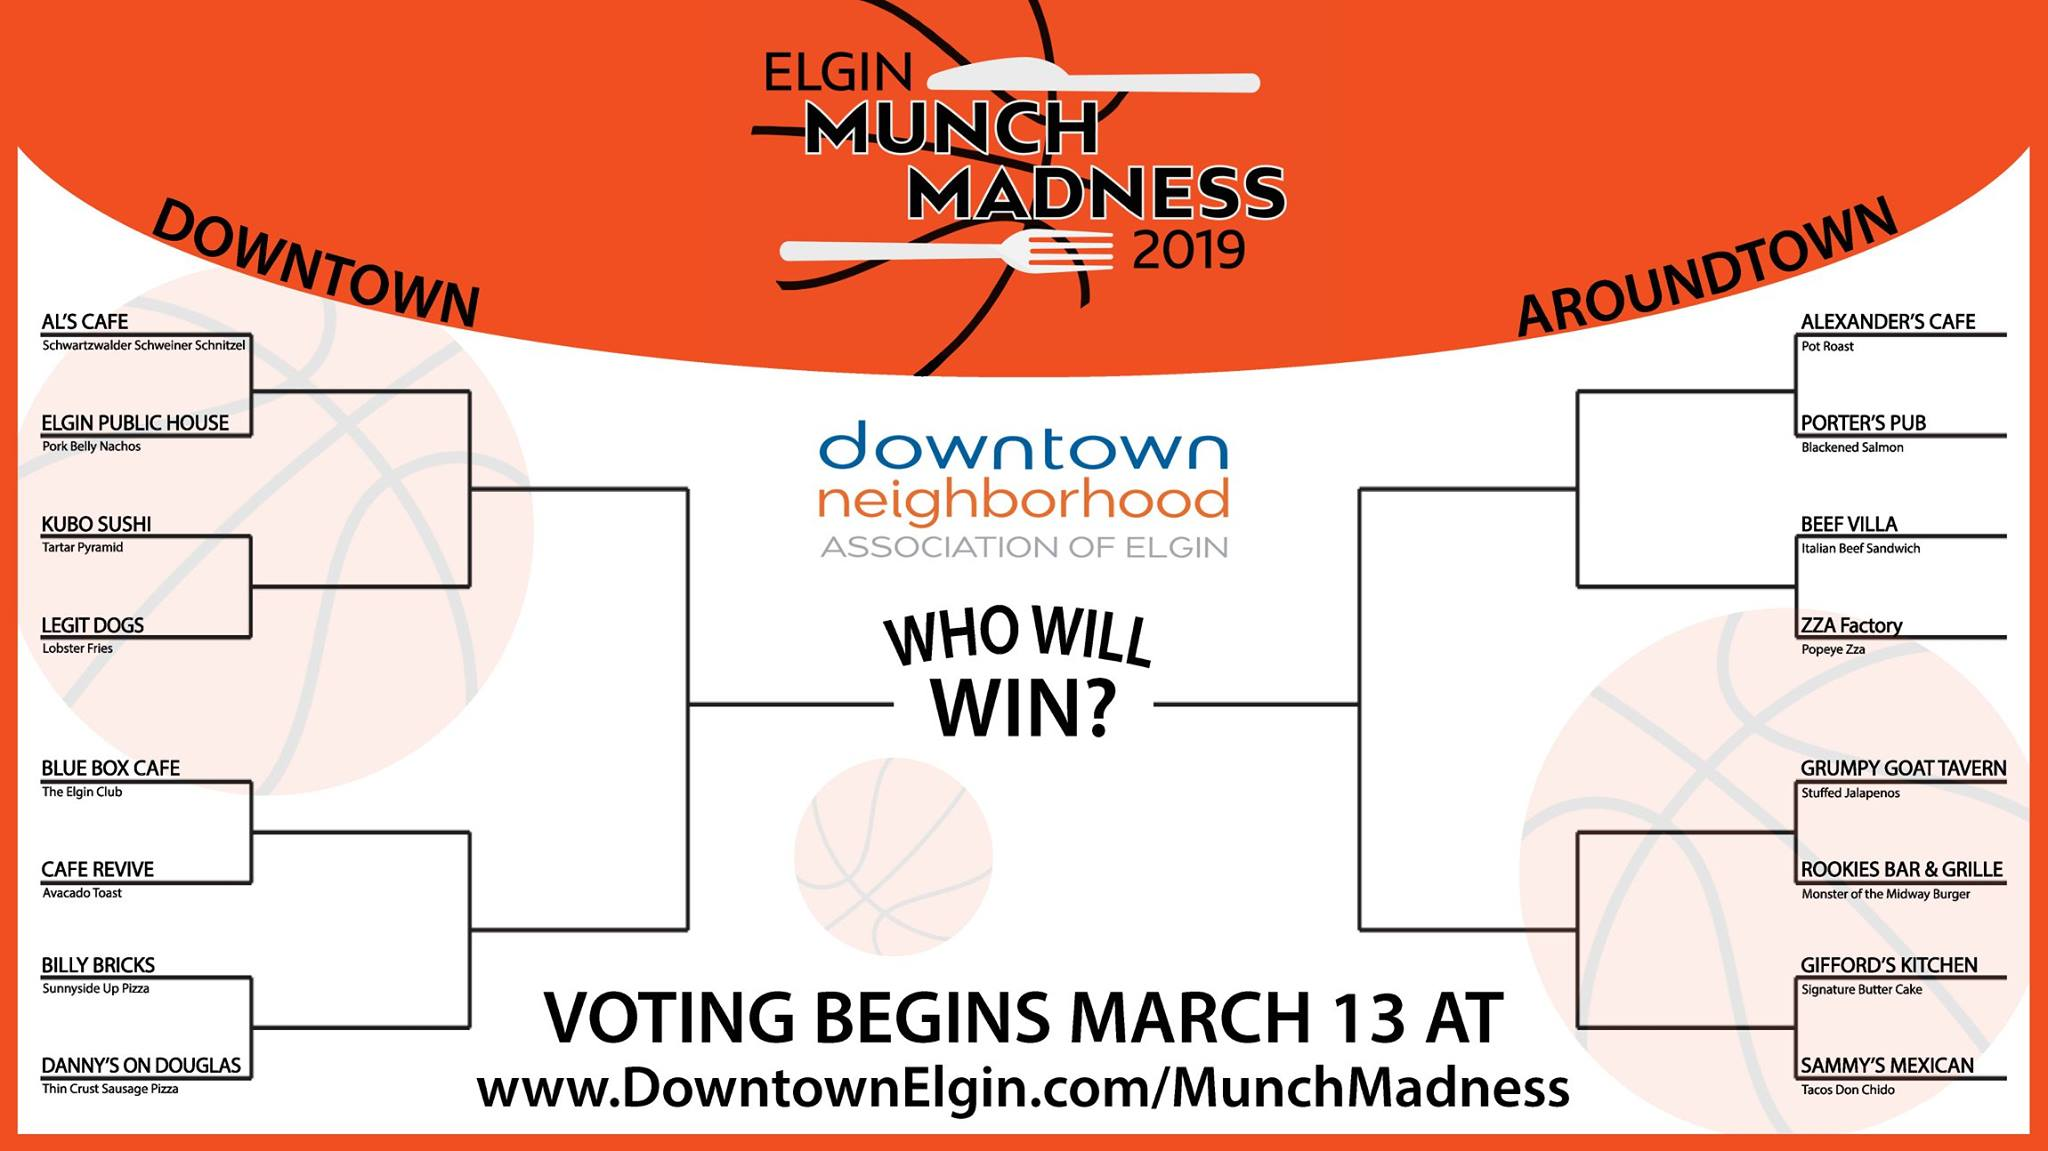 Munch madness restaurant competition bracket